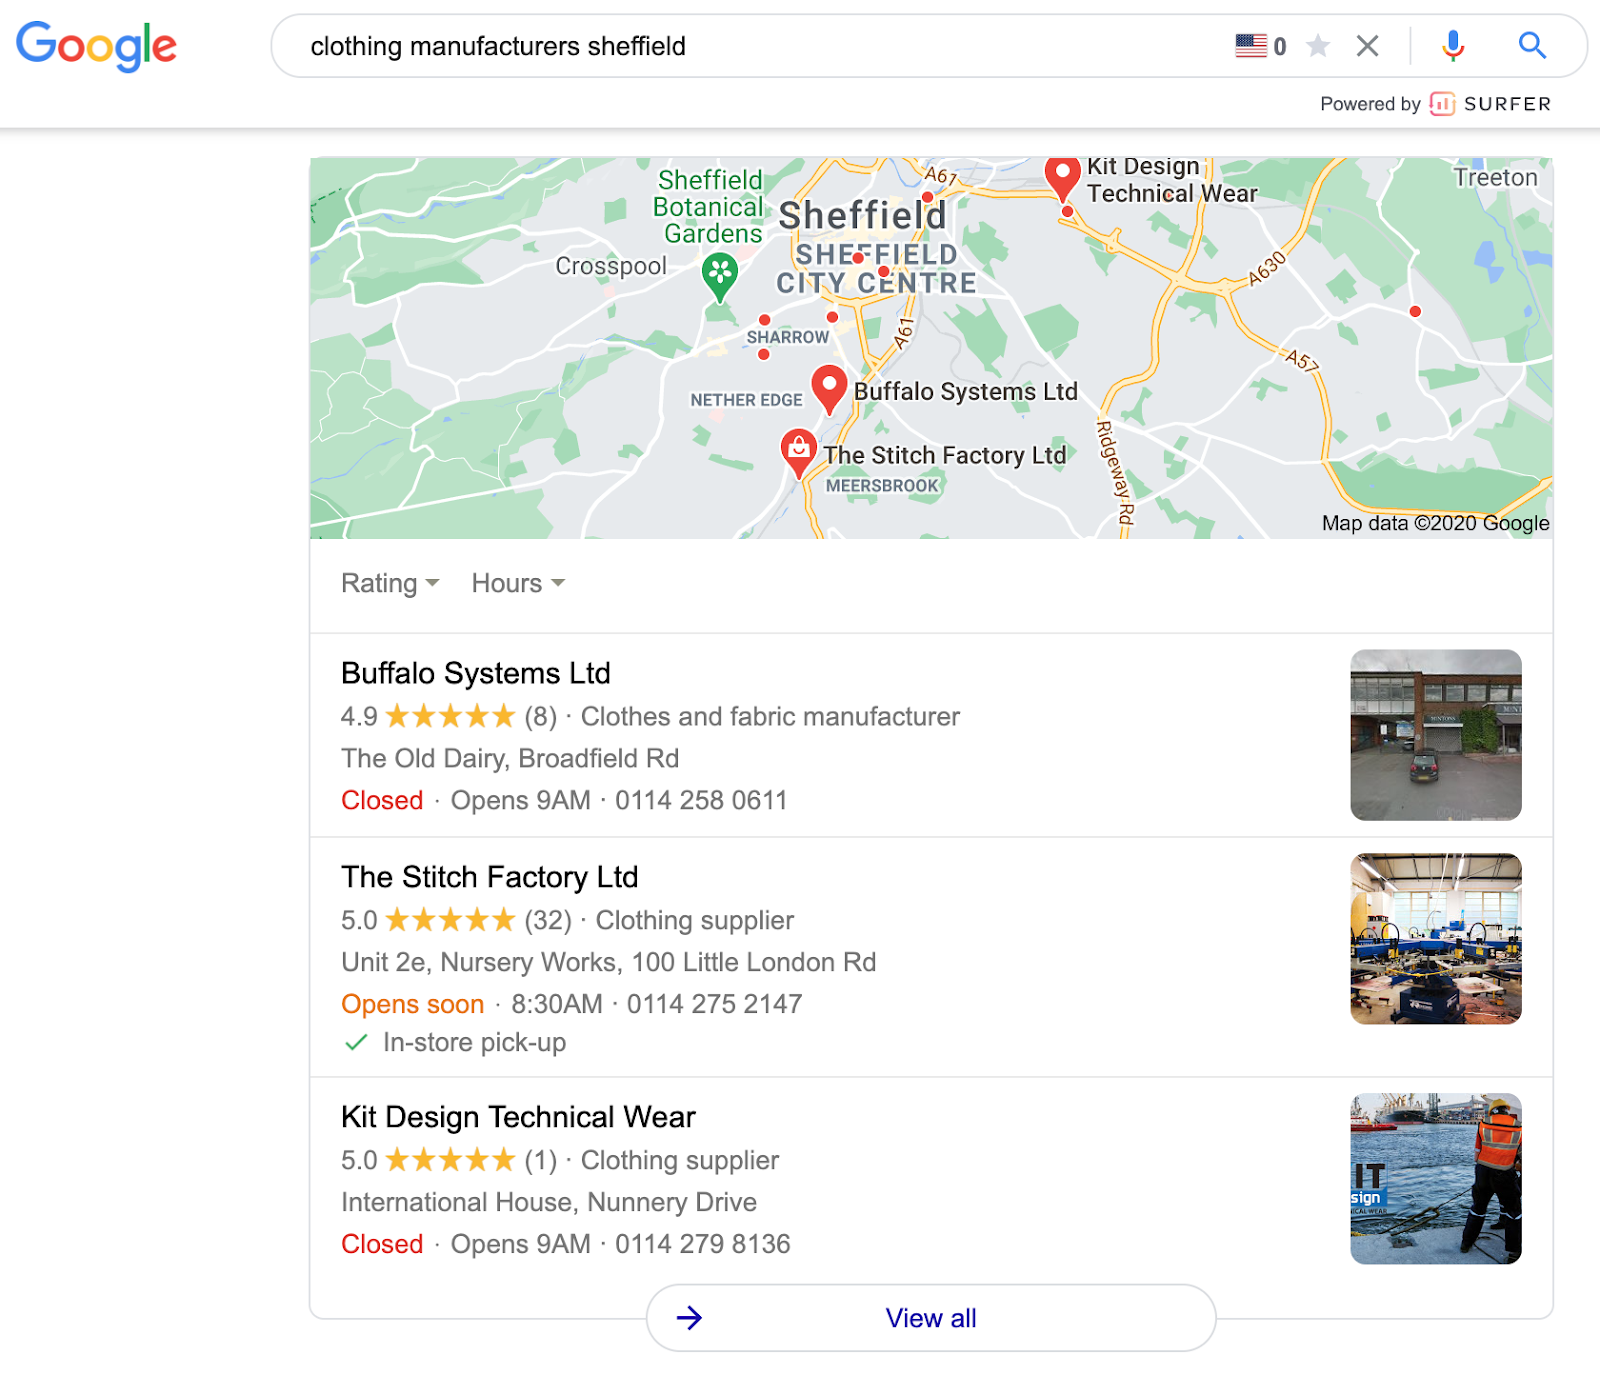 Google search for clothing manufacturers in Sheffield